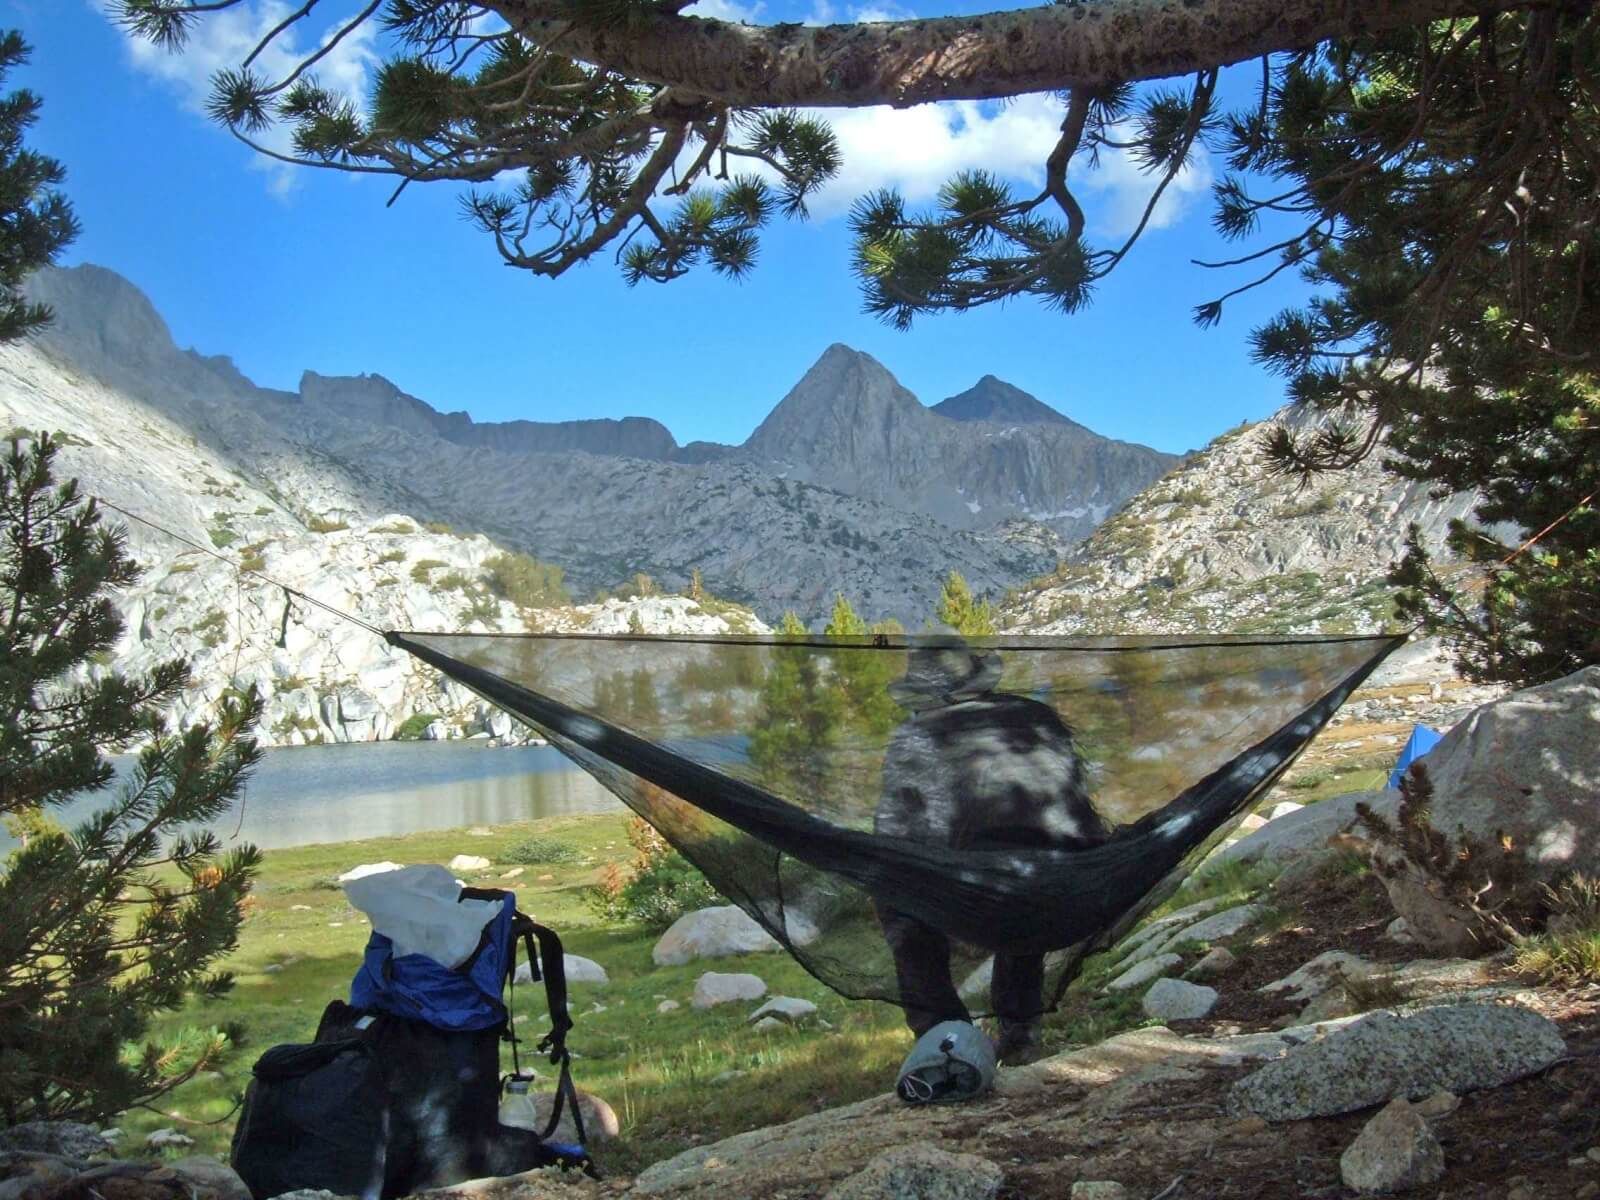 a gathered end hammock made by george  u201ctin man u201d andrews  self portrait  being used as a camp chair during a thru hike of the john muir trail in california  hammock camping   part ii  types of backpacking hammocks and spec      rh   adventurealan